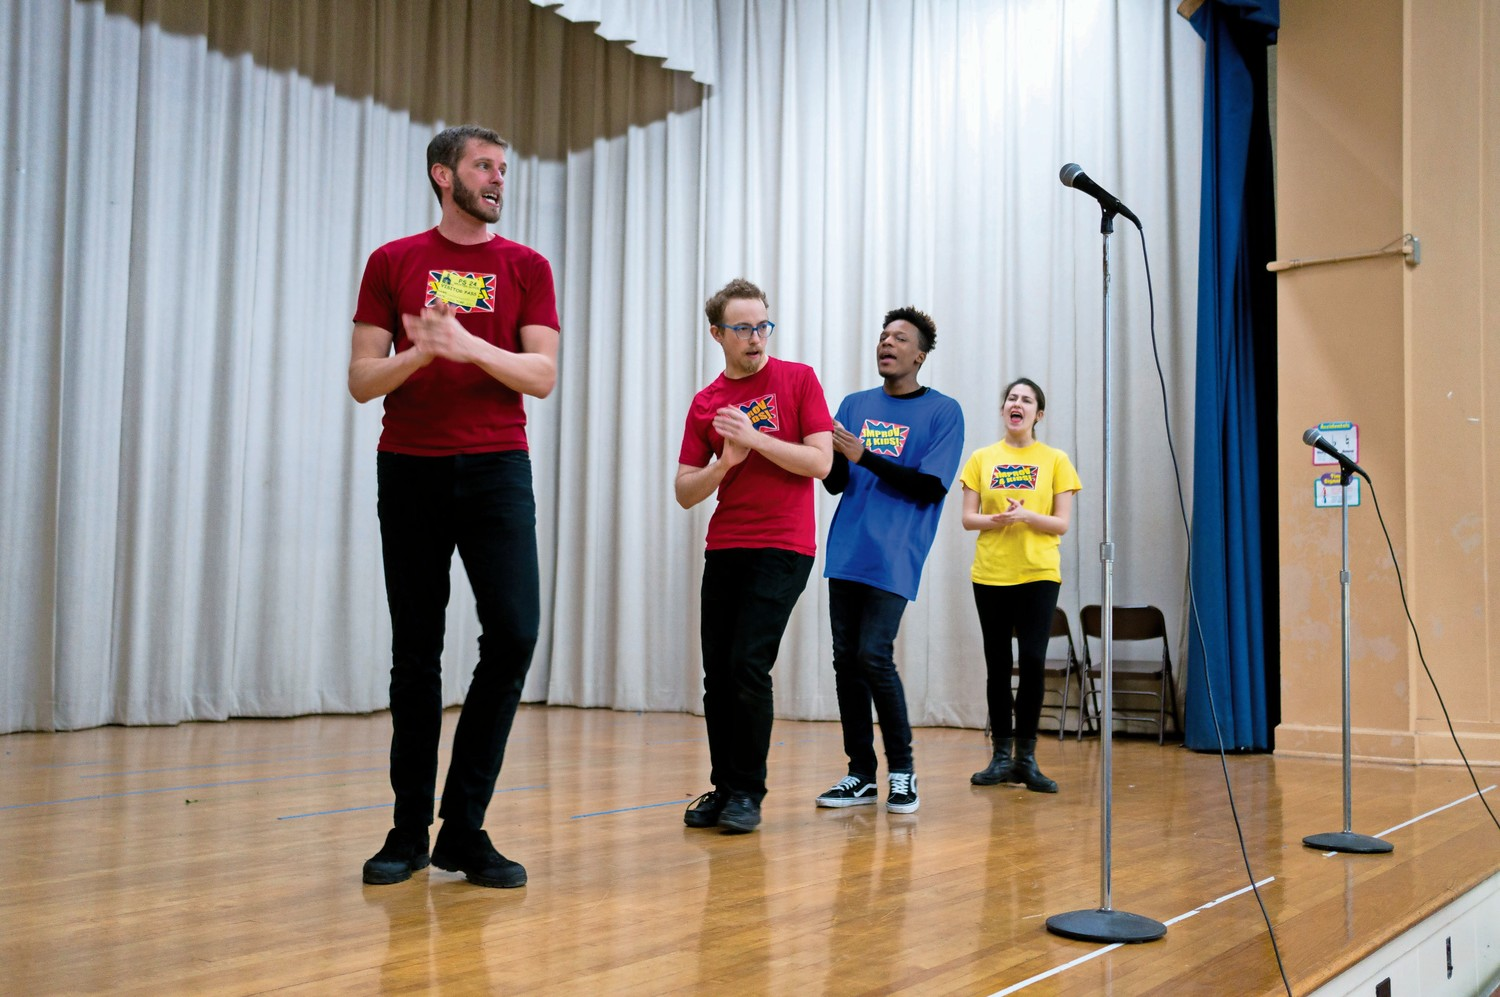 Members of the improv comedy troupe 'Eight is Never Enough' improvise a song title 'The Hot Pocket Blues' at P.S. 24.